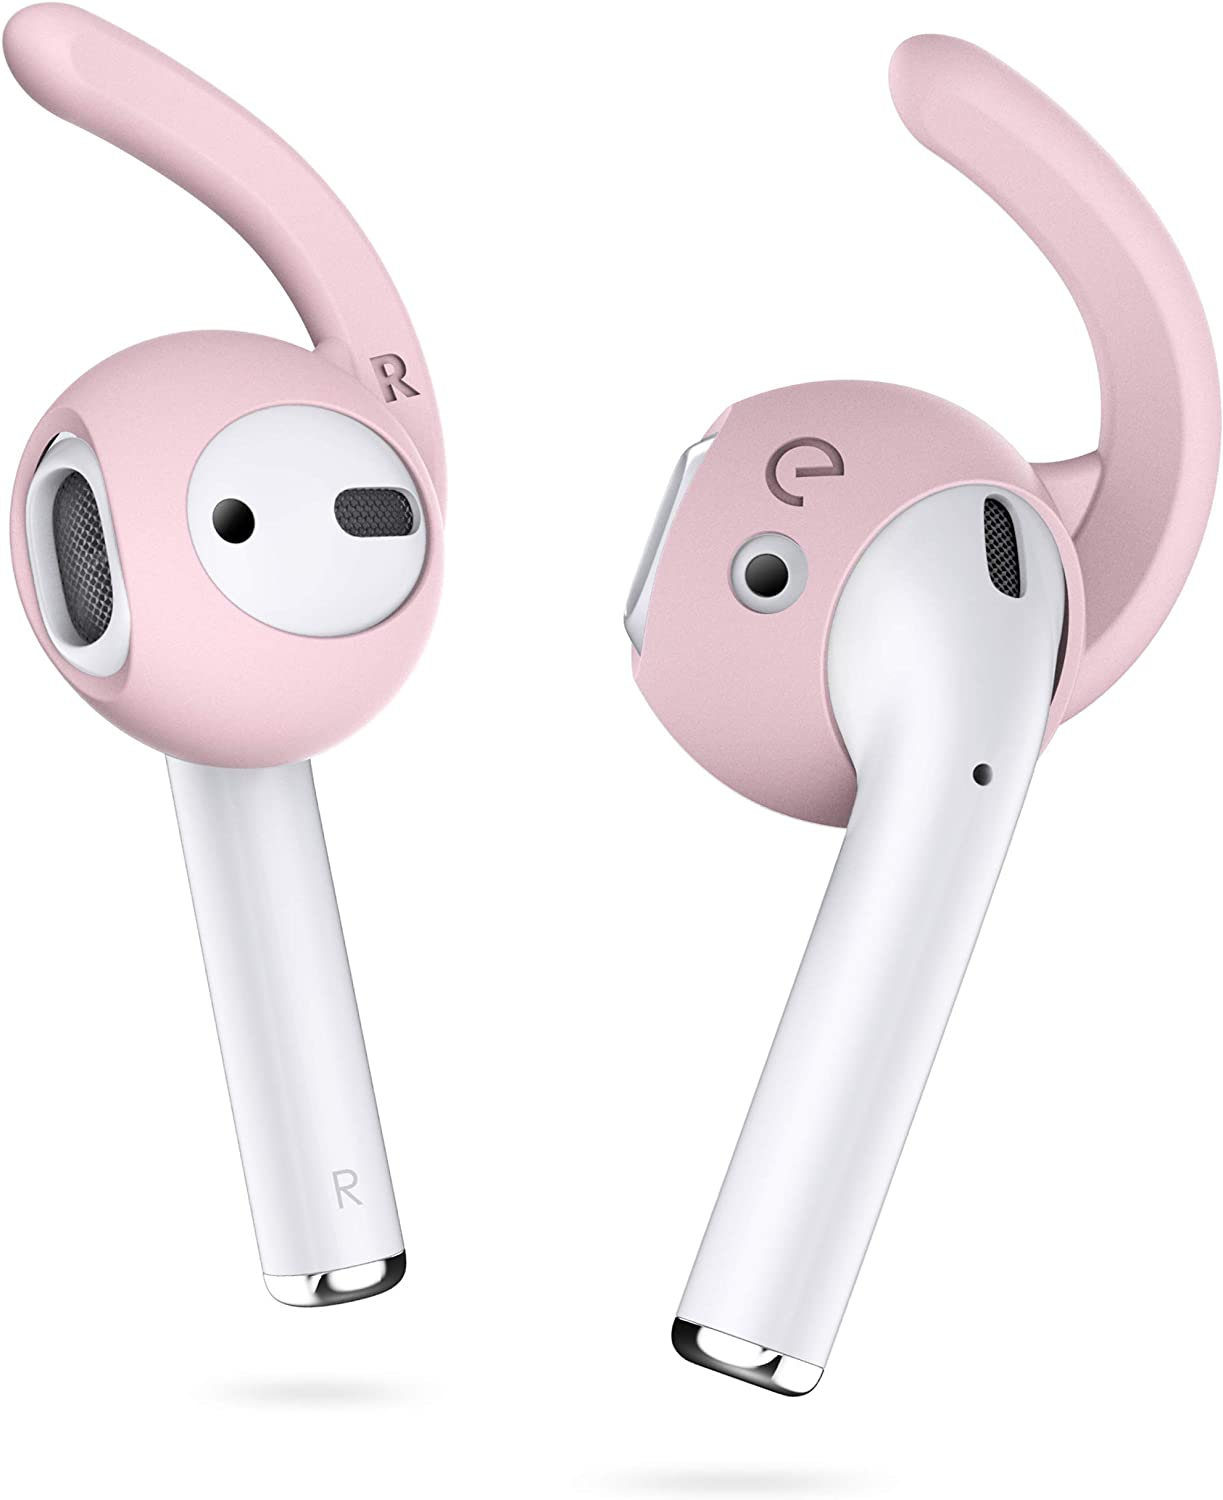 EarBuddyz 2.0 Ear Hooks and Covers Accessories Compatible with Apple AirPods 1 & 2 or EarPods Headphones/Earphones/Earbuds (3 Pairs) (Pretty in Pink)